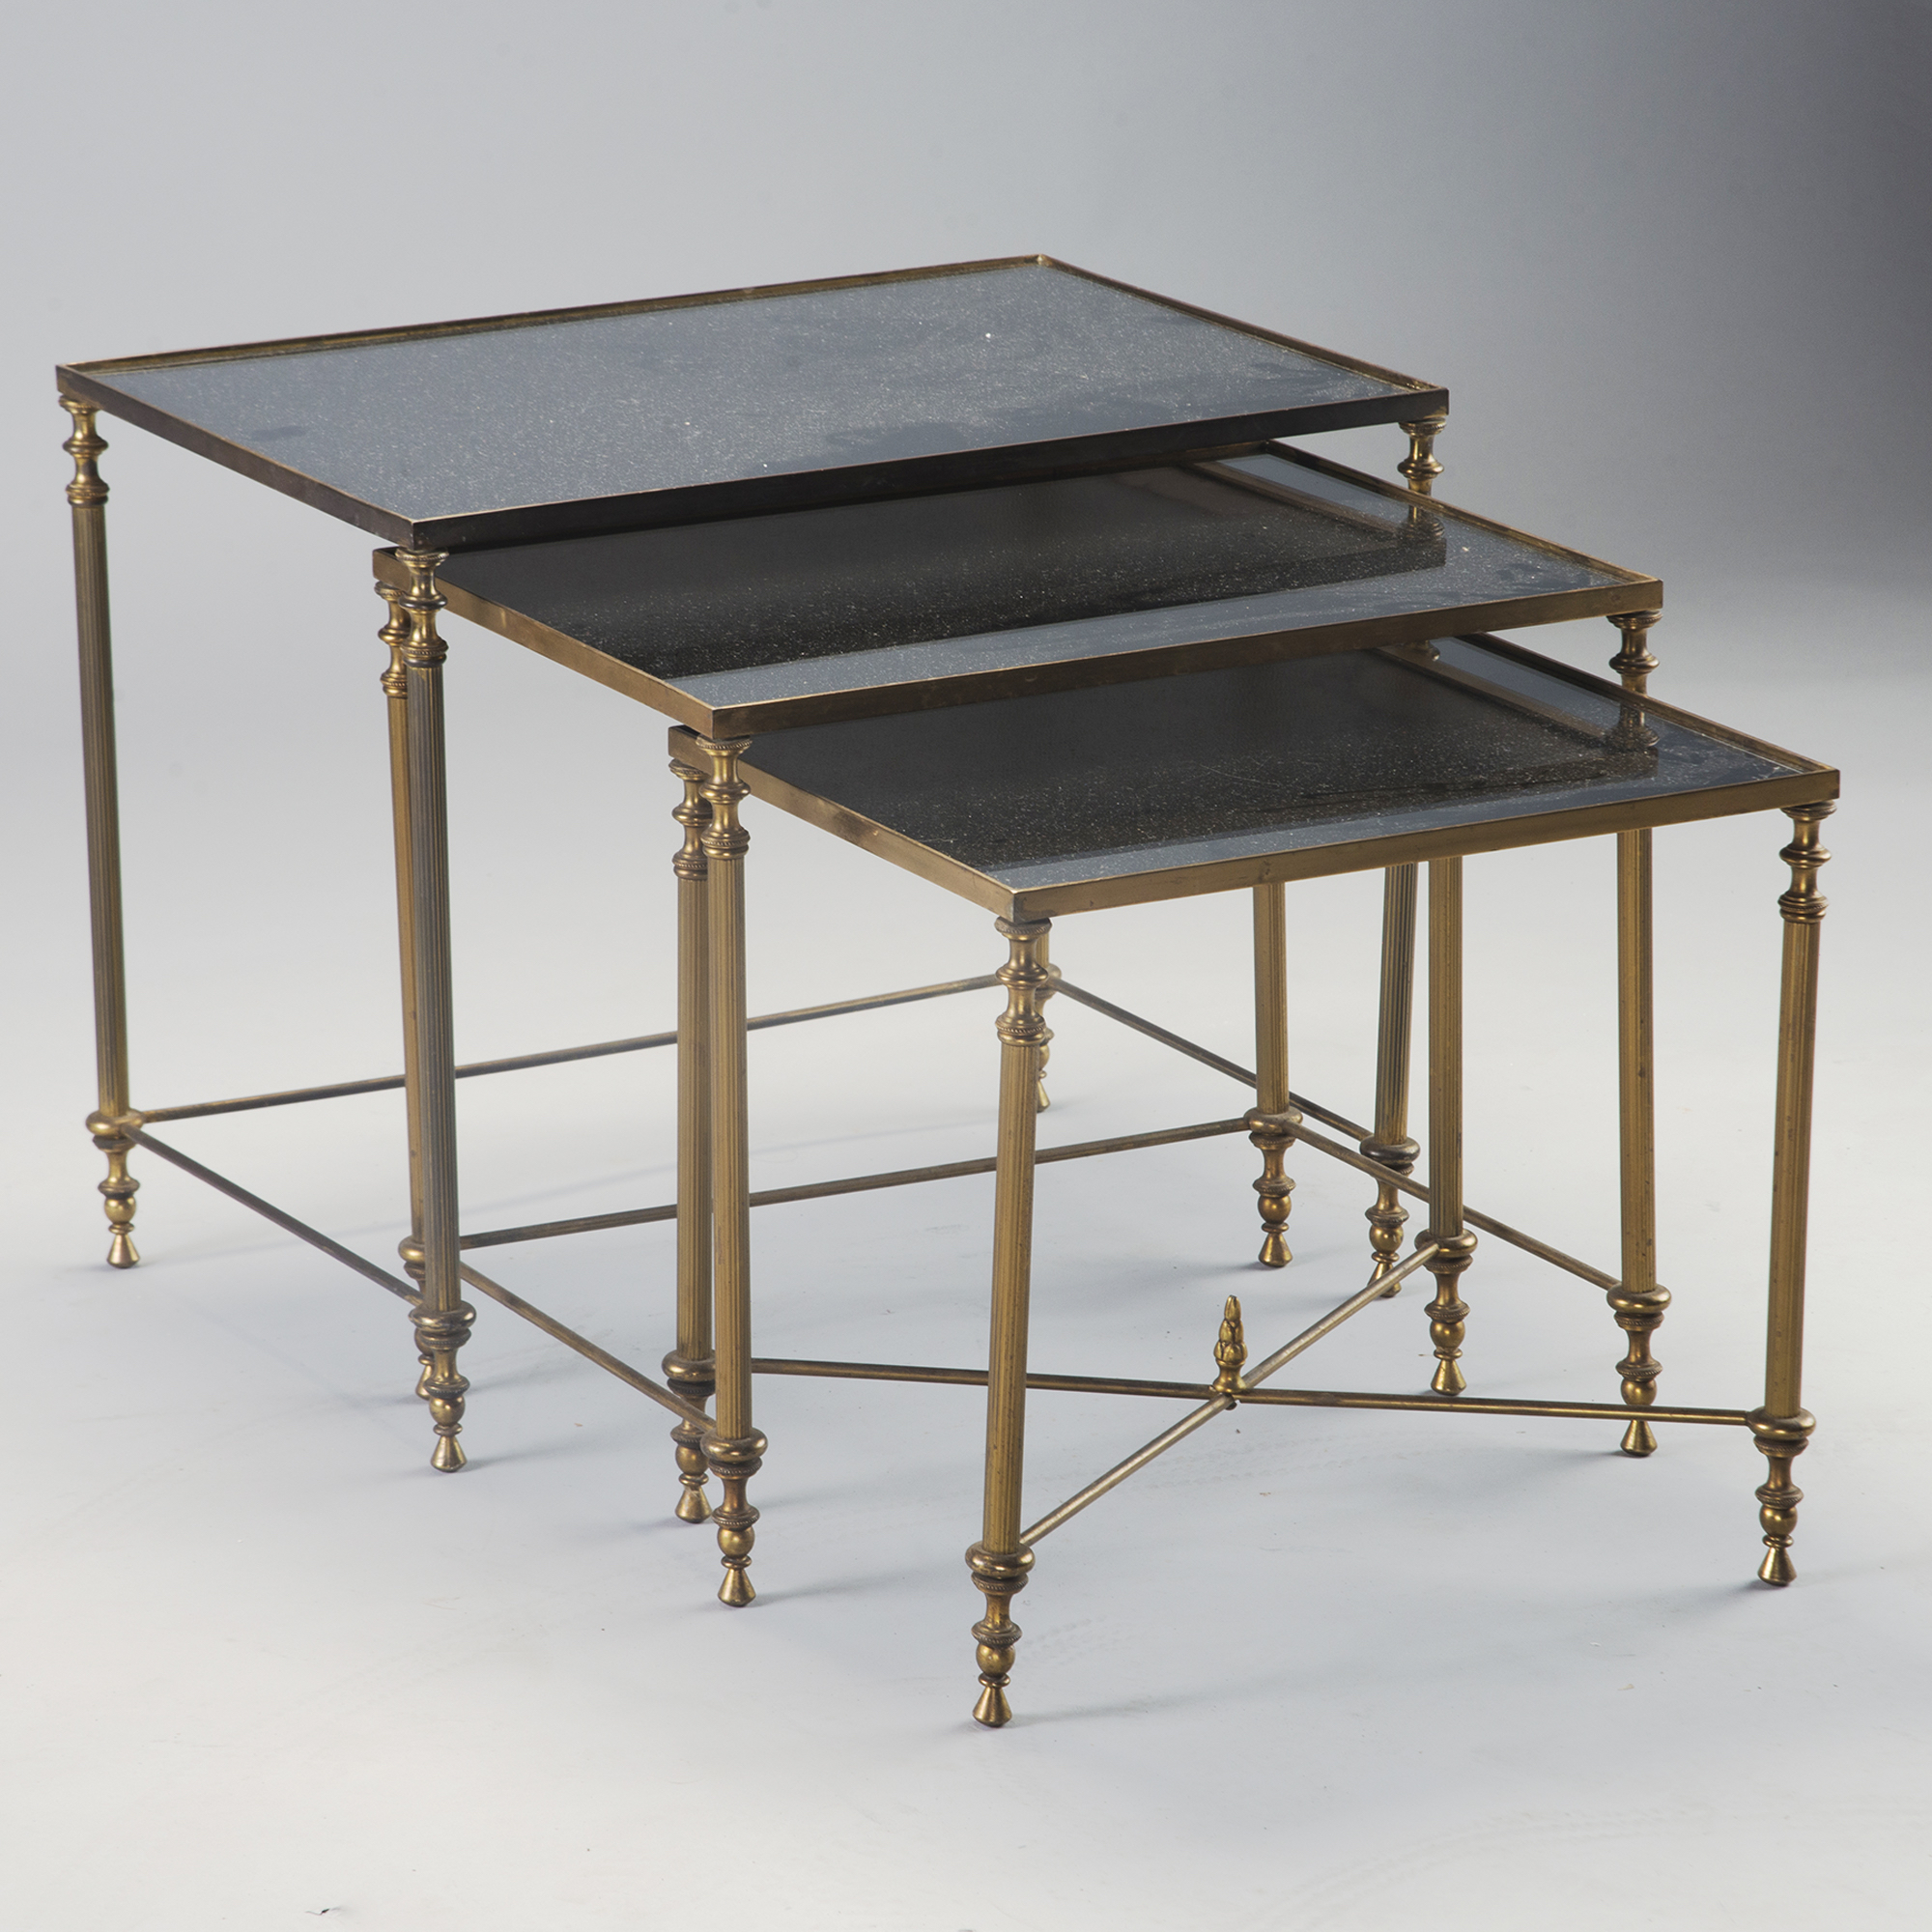 Glass Nesting Tables Trio Of Brass And Black Mirrored Glass Nesting Tables